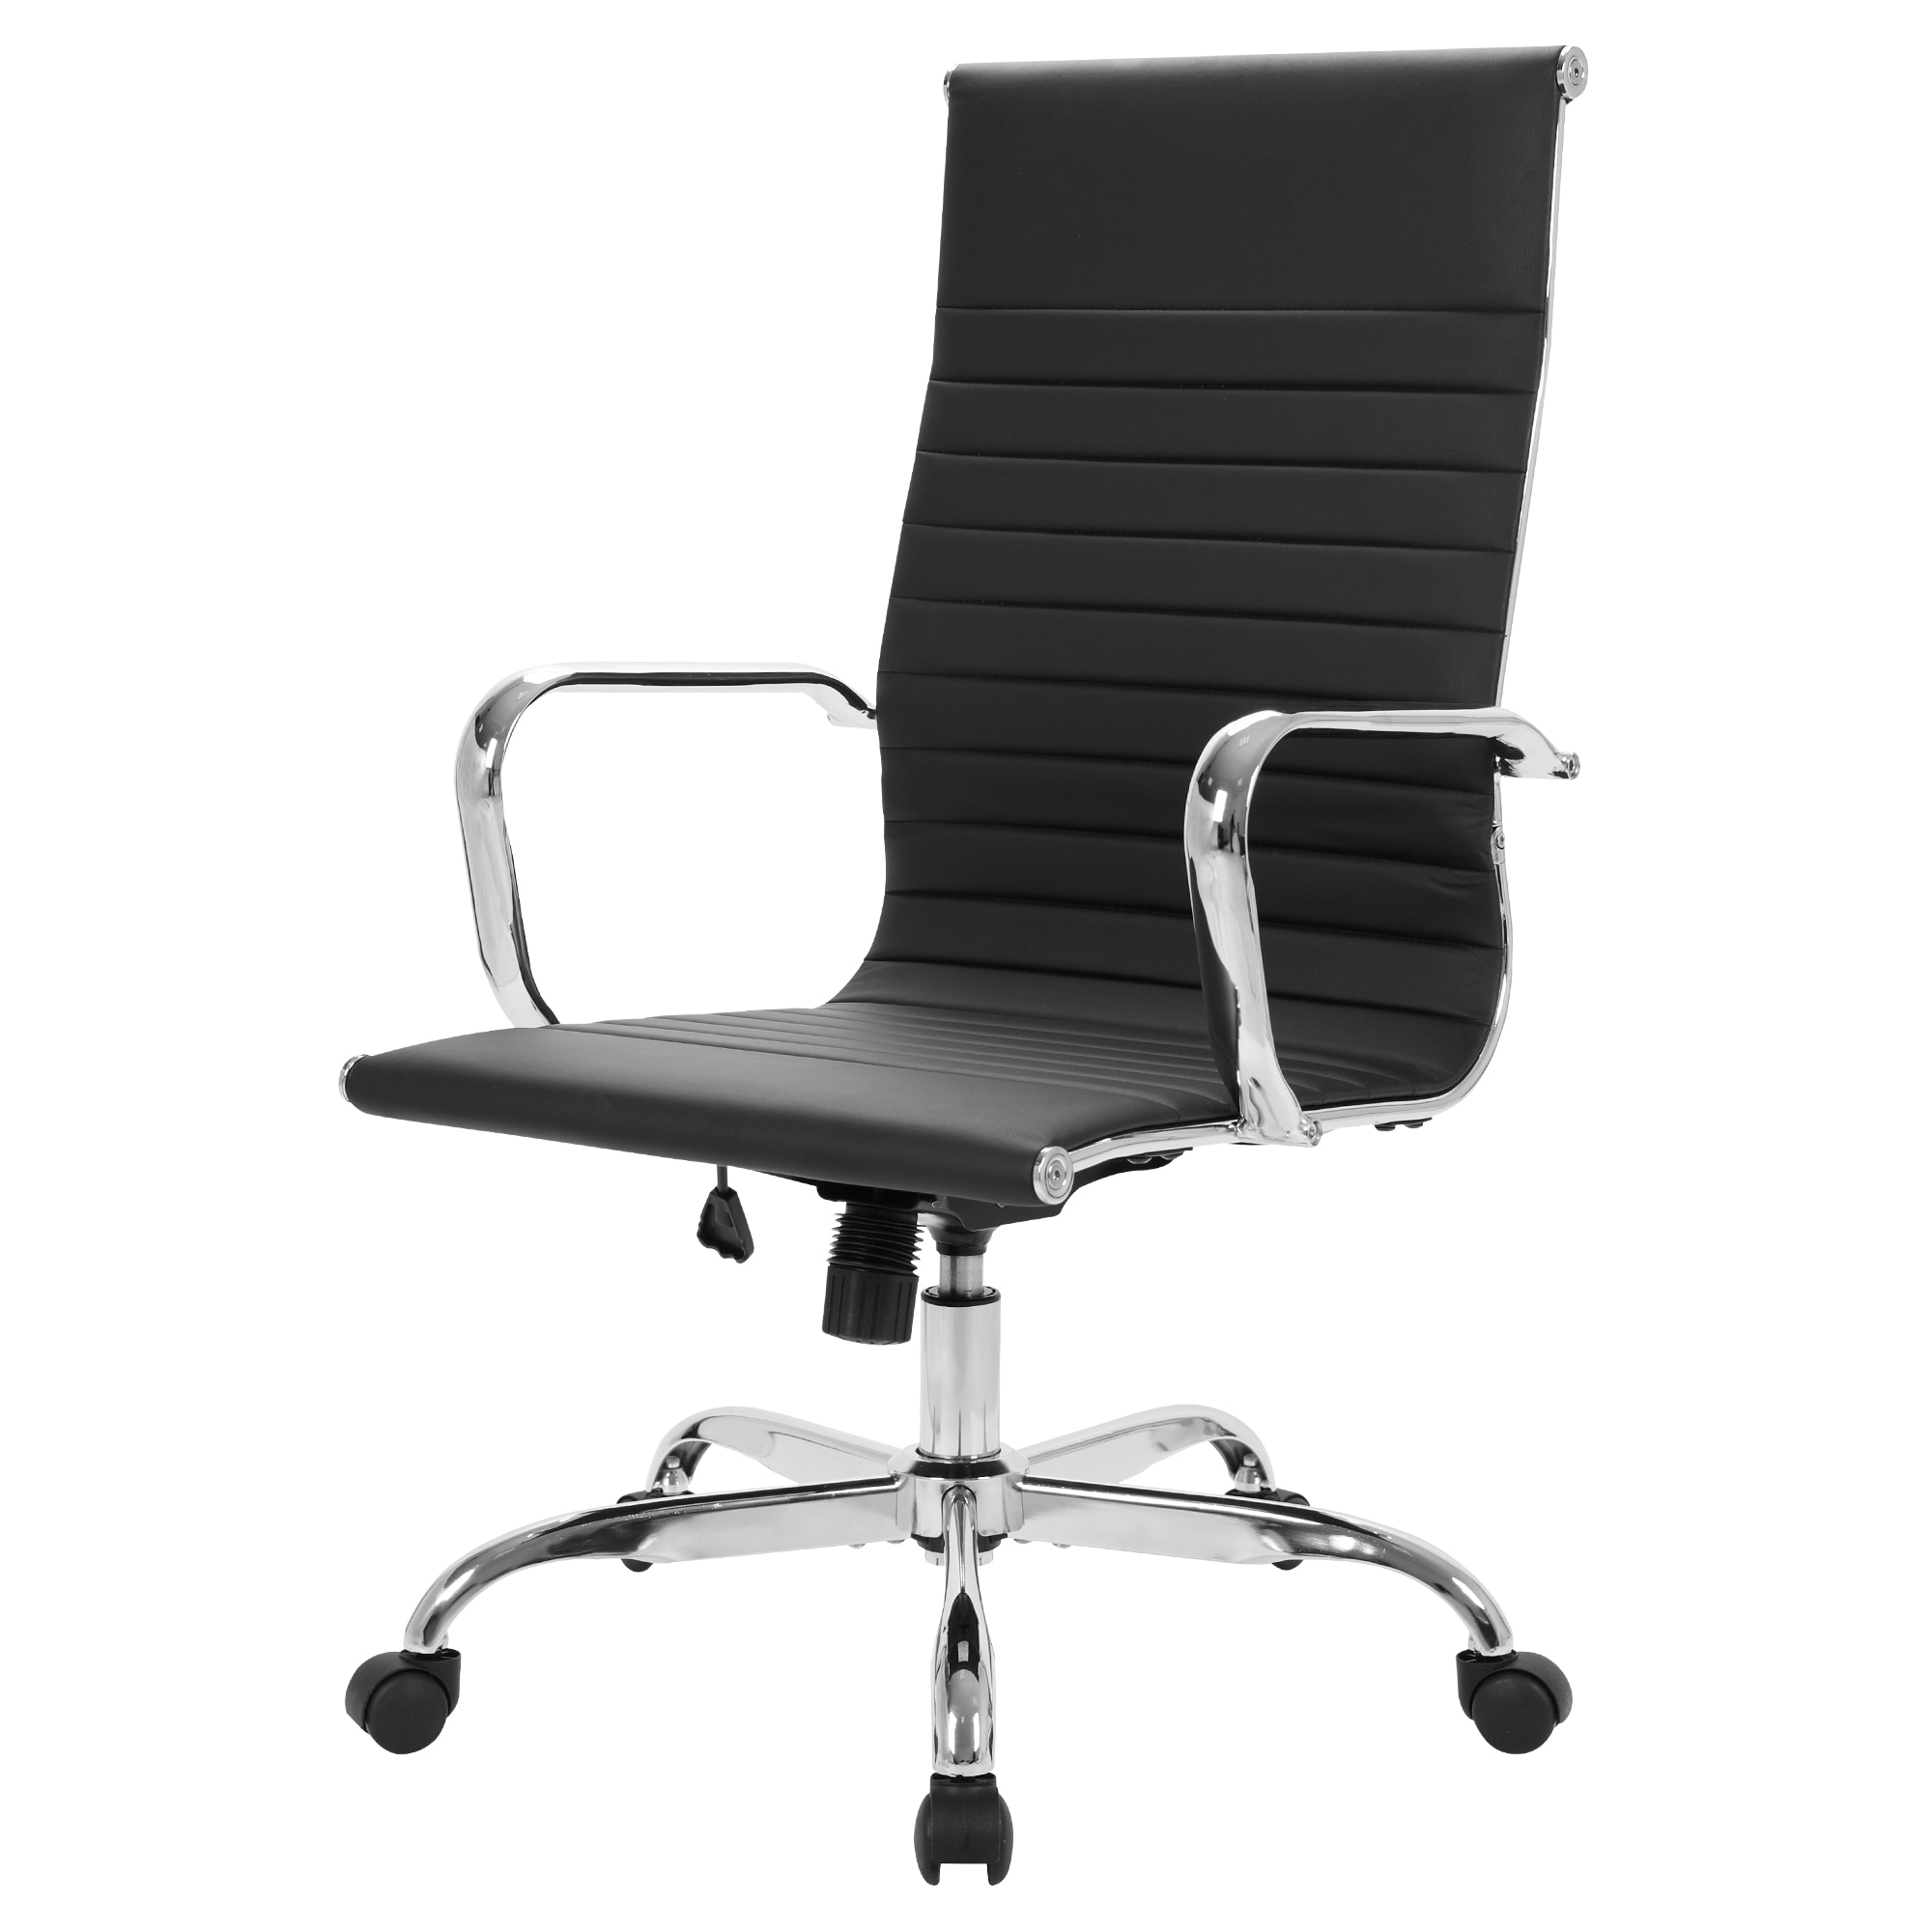 homall ribbed office chair mid back pu leather executive conference desk chair adjustable swivel chair with comfortable arms GOSKEY High Back Office Chair PU Leather Ribbed Swivel Tilt Adjustable Home Desk Chair with Armrest Executive Conference Black